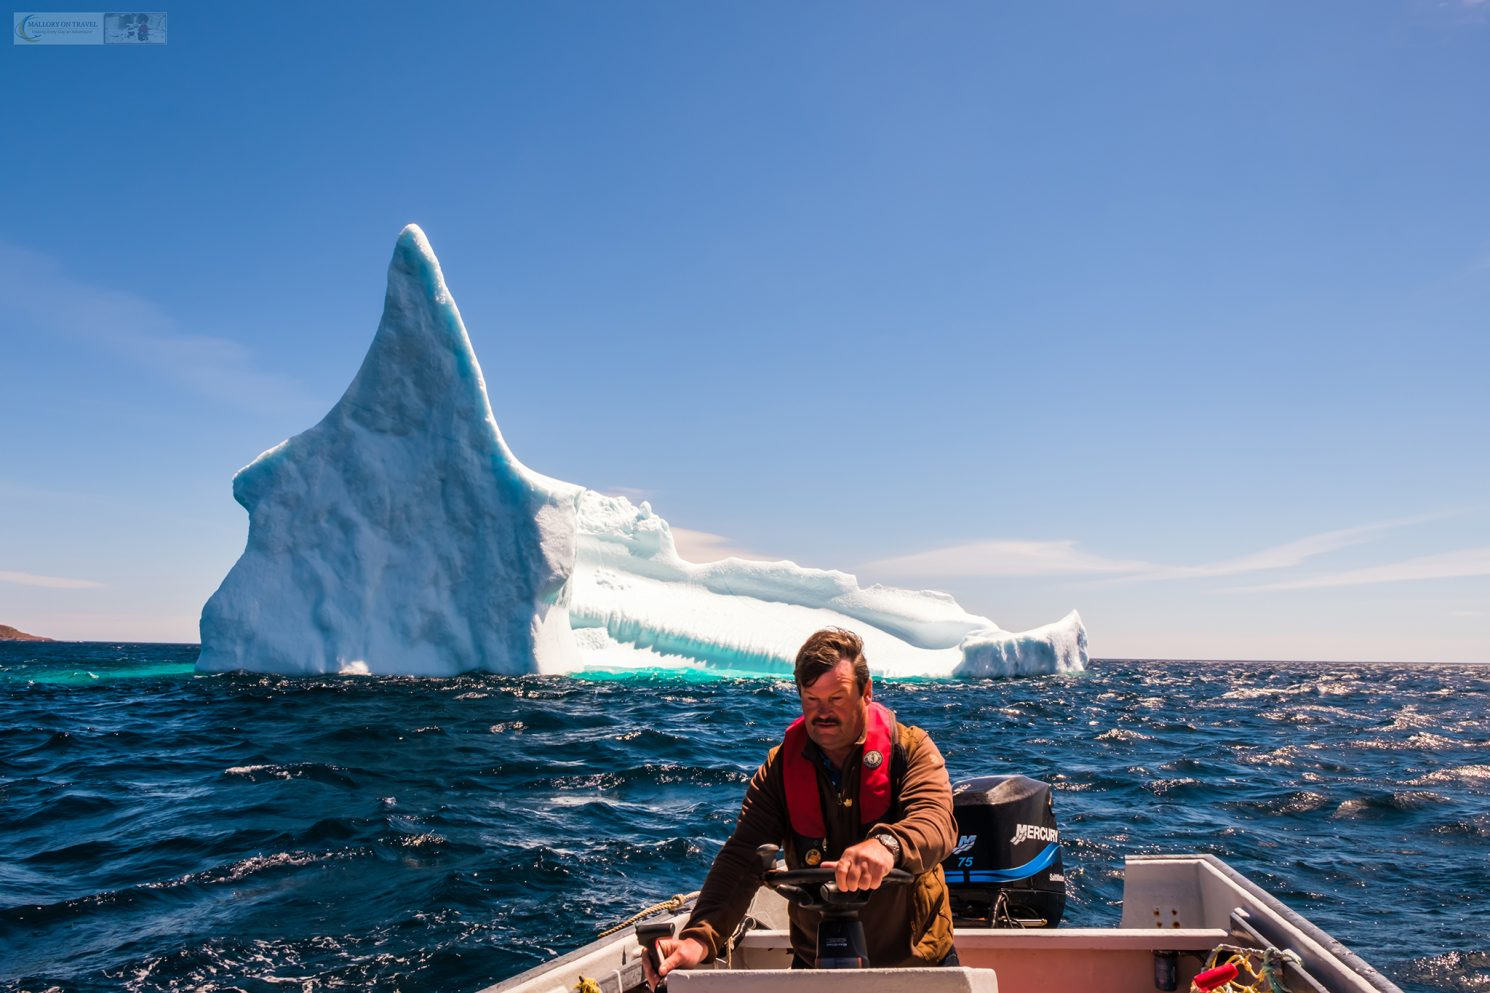 Iceberg chasing near Petty Harbour on Iceberg Alley on the Avalon Peninsula of Newfoundland and Labrador, Canada on Mallory on Travel adventure travel, photography, travel Iain Mallory_stjohns-1-6